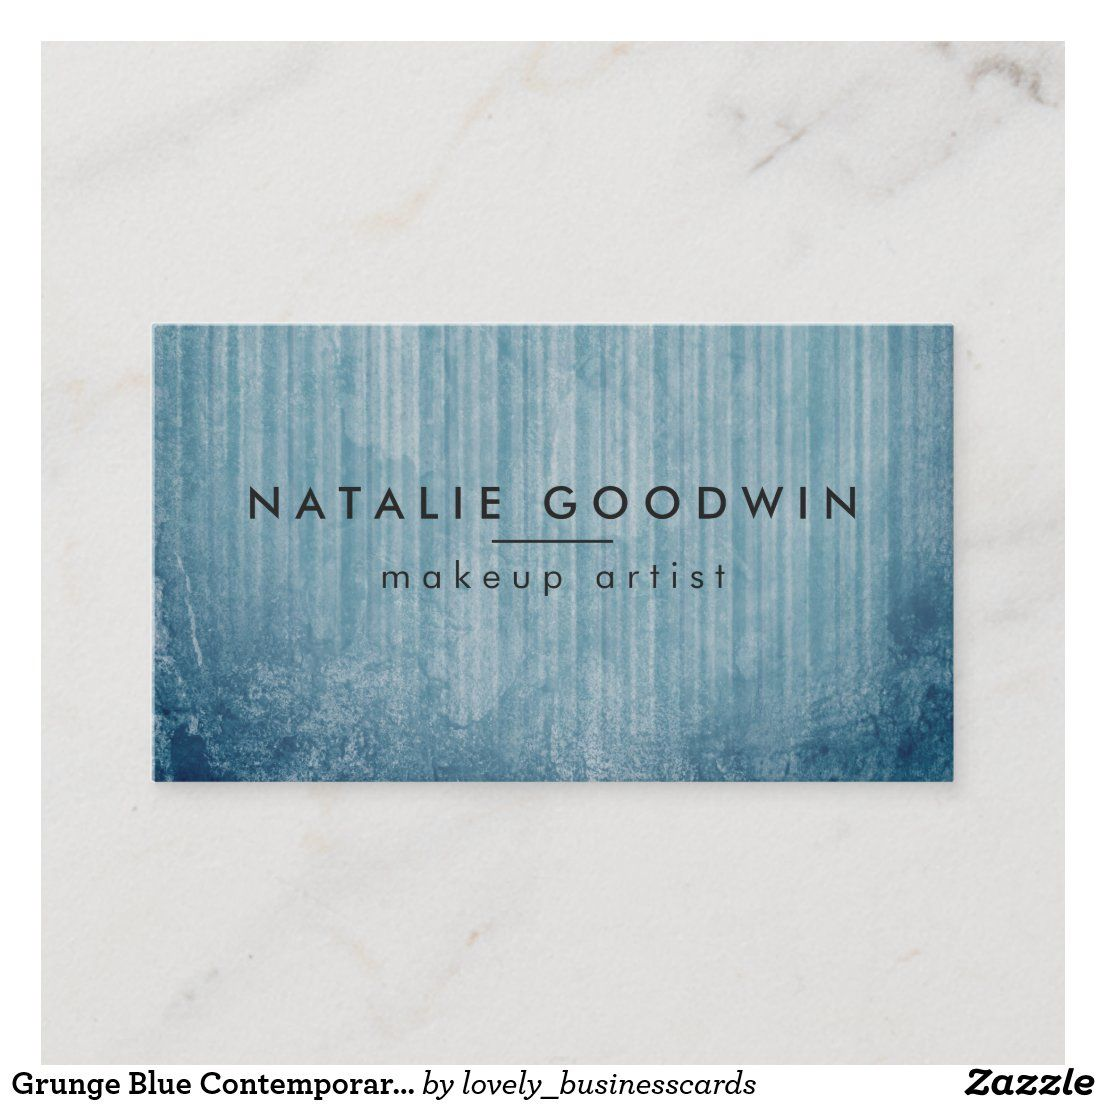 Gold Lux Business Card Zazzle Com In 2021 Luxe Business Cards Fashion Business Cards Business Card Design